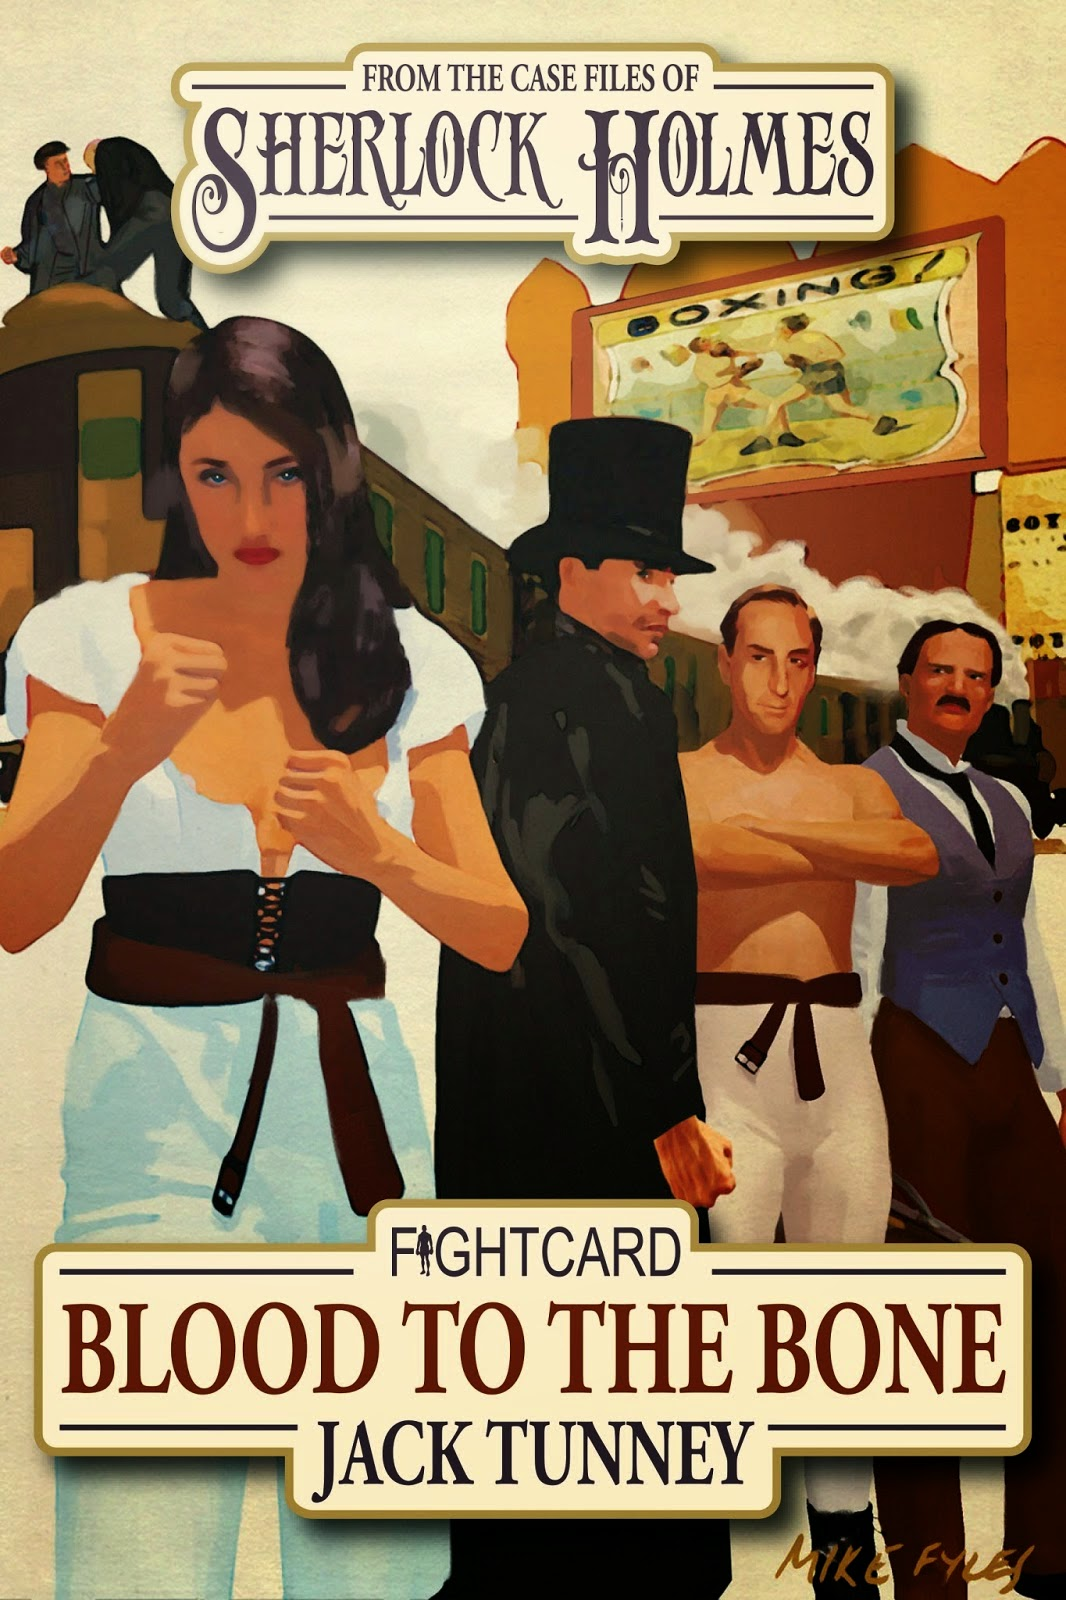 Andrew Salmon's second Fight Card book about Sherlock Holmes